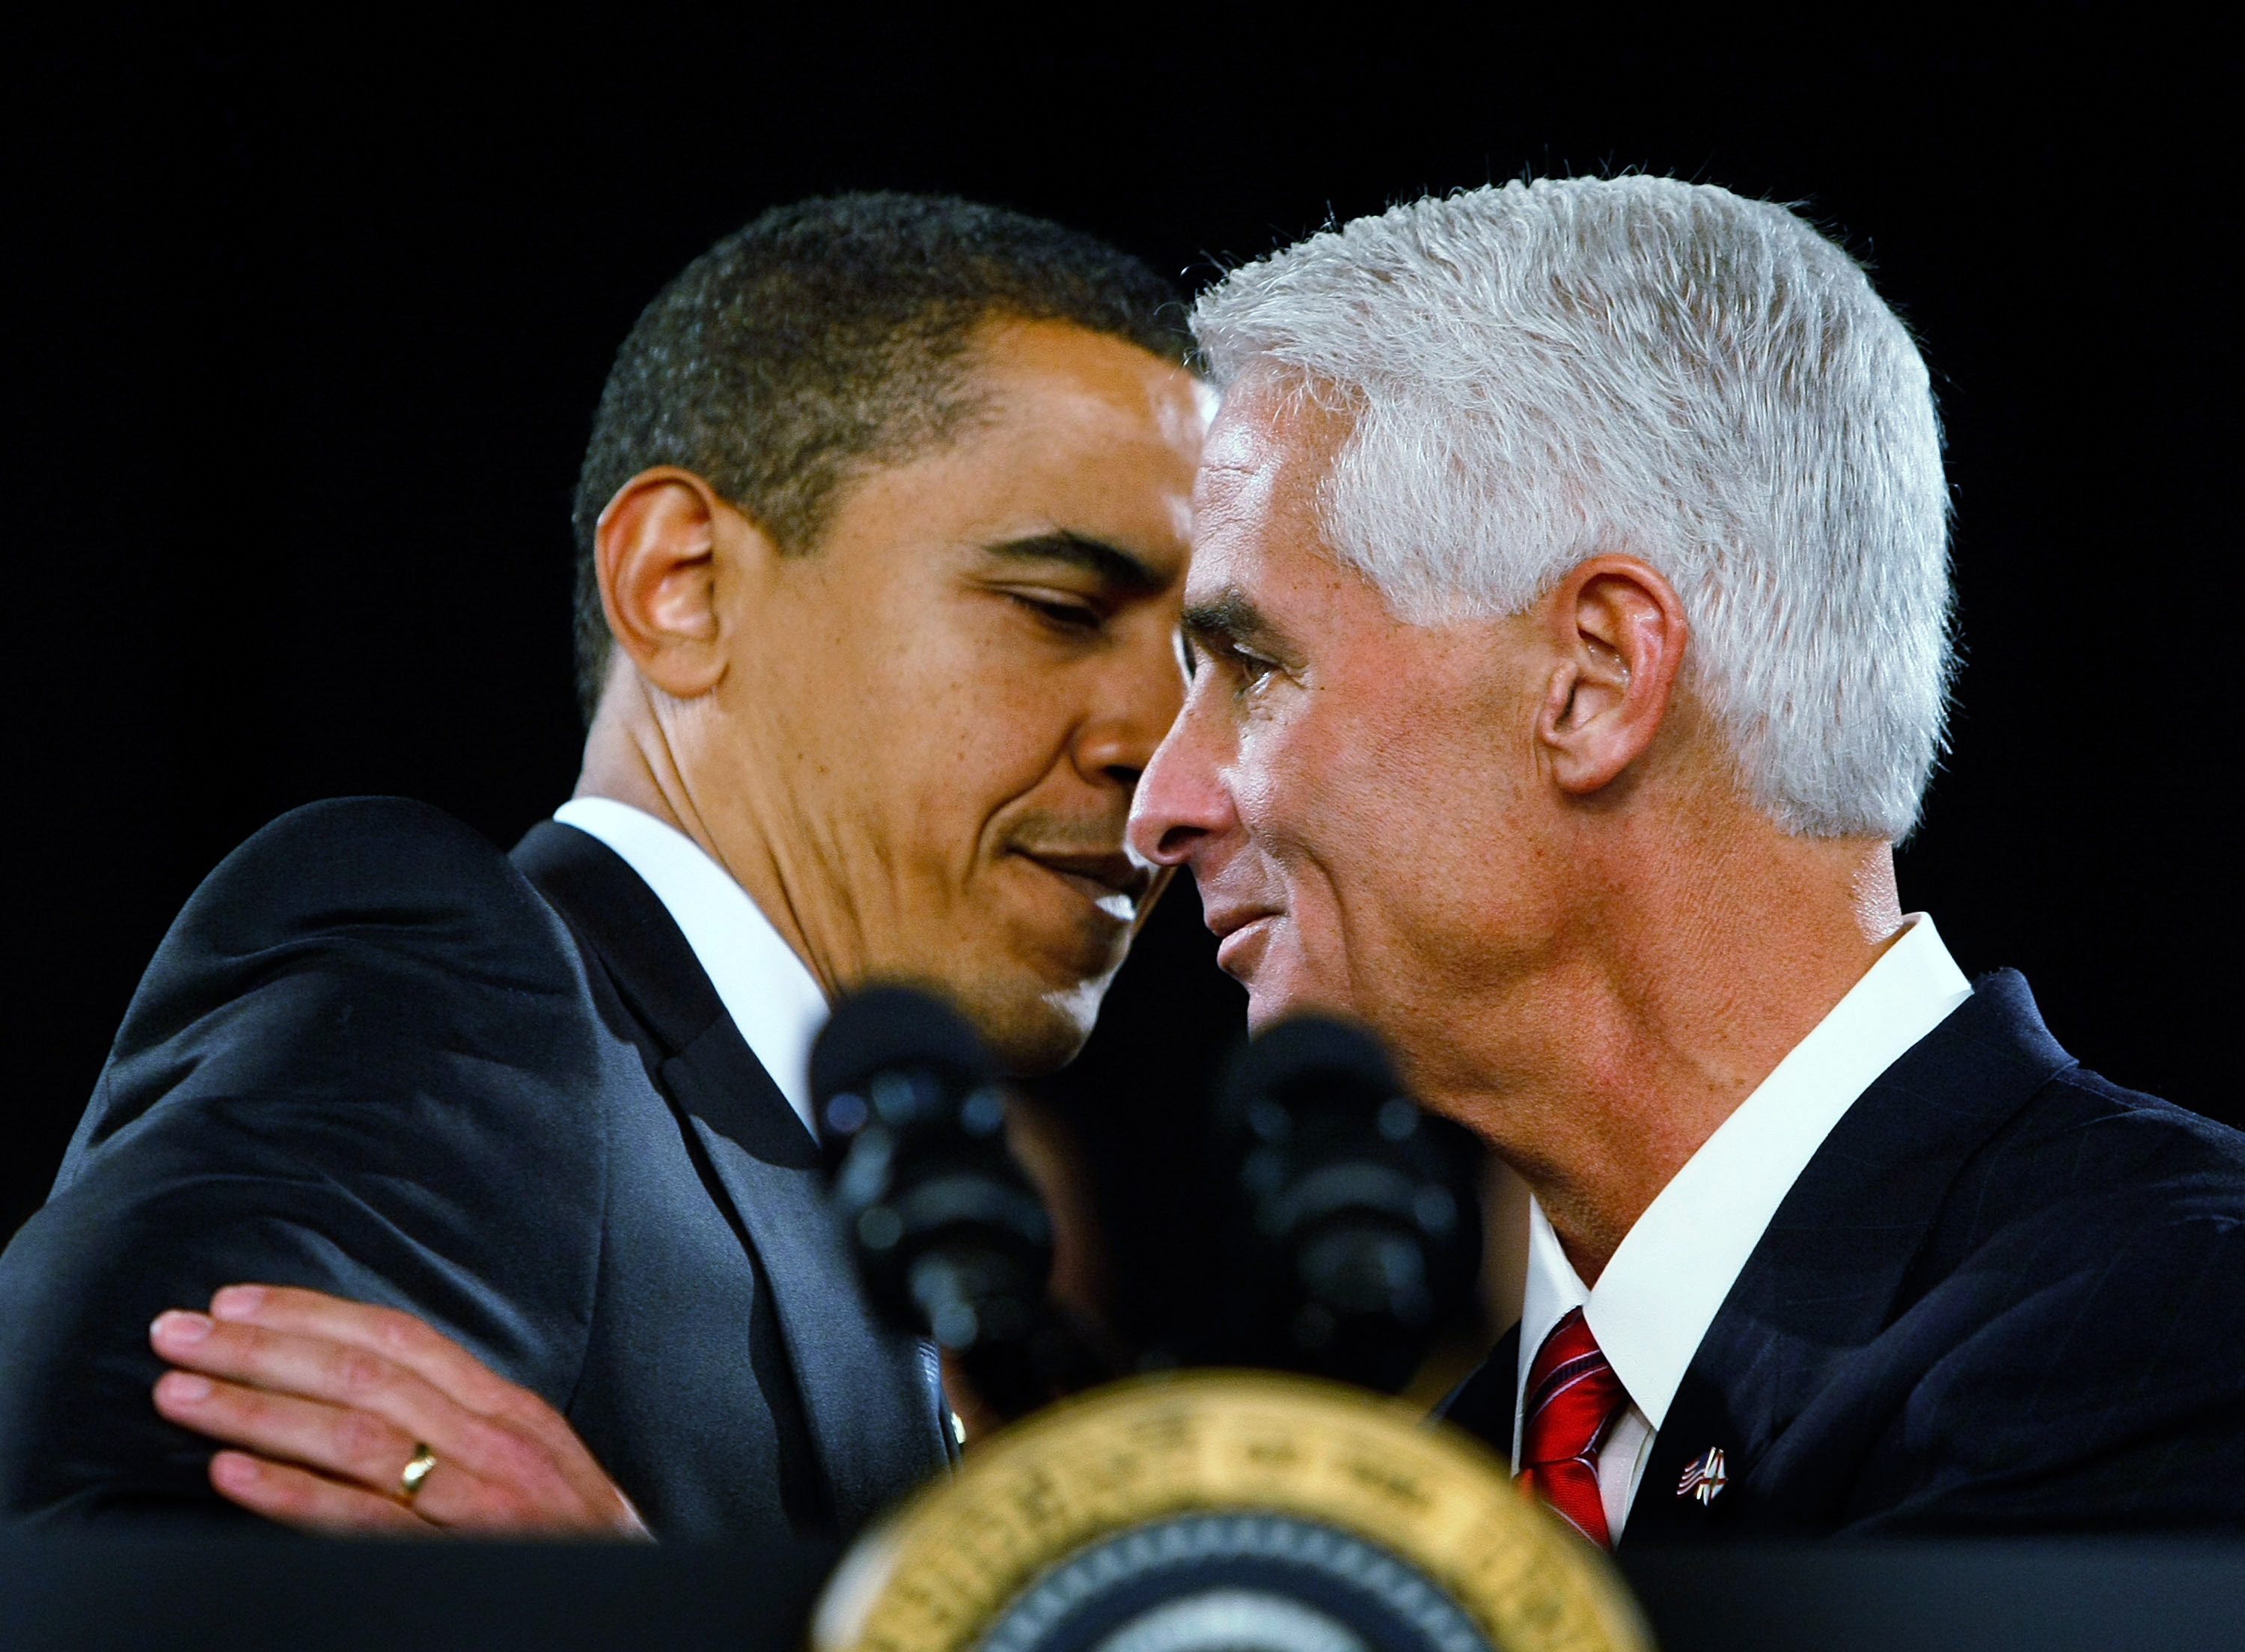 Republican Florida Governor Charlie Crist is hugged by President Barack Obama as the Governor introduces him during a Town Hall Meeting at the Harborside Event Center February 10, 2009 in Fort Myers, Fla.